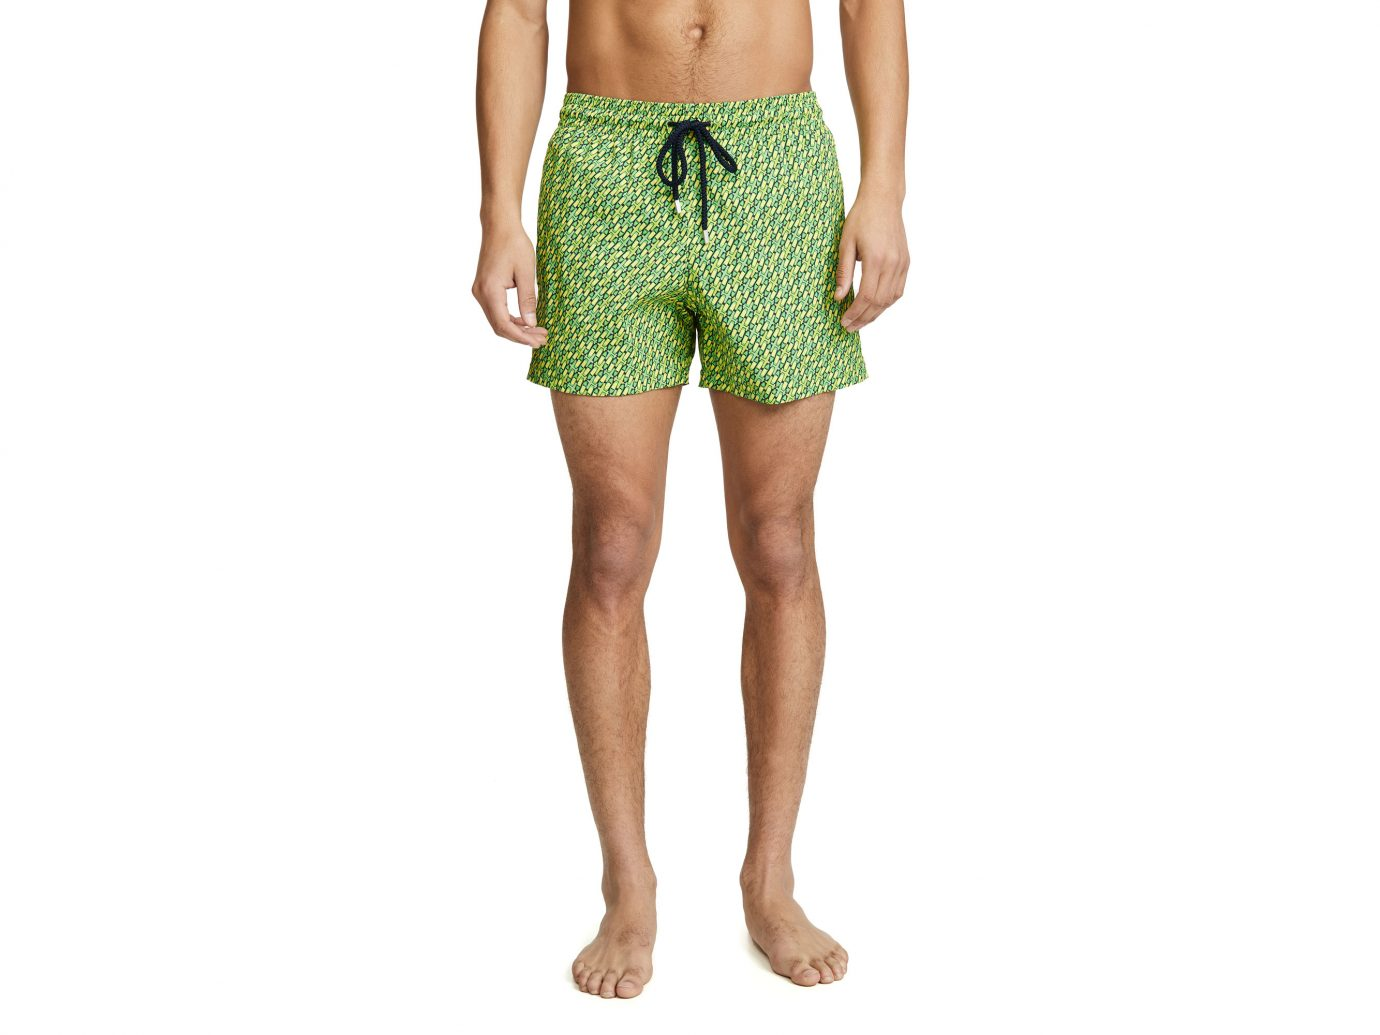 4087022a011 The 16 BEST Men's Swim Trunks of 2019 | Jetsetter